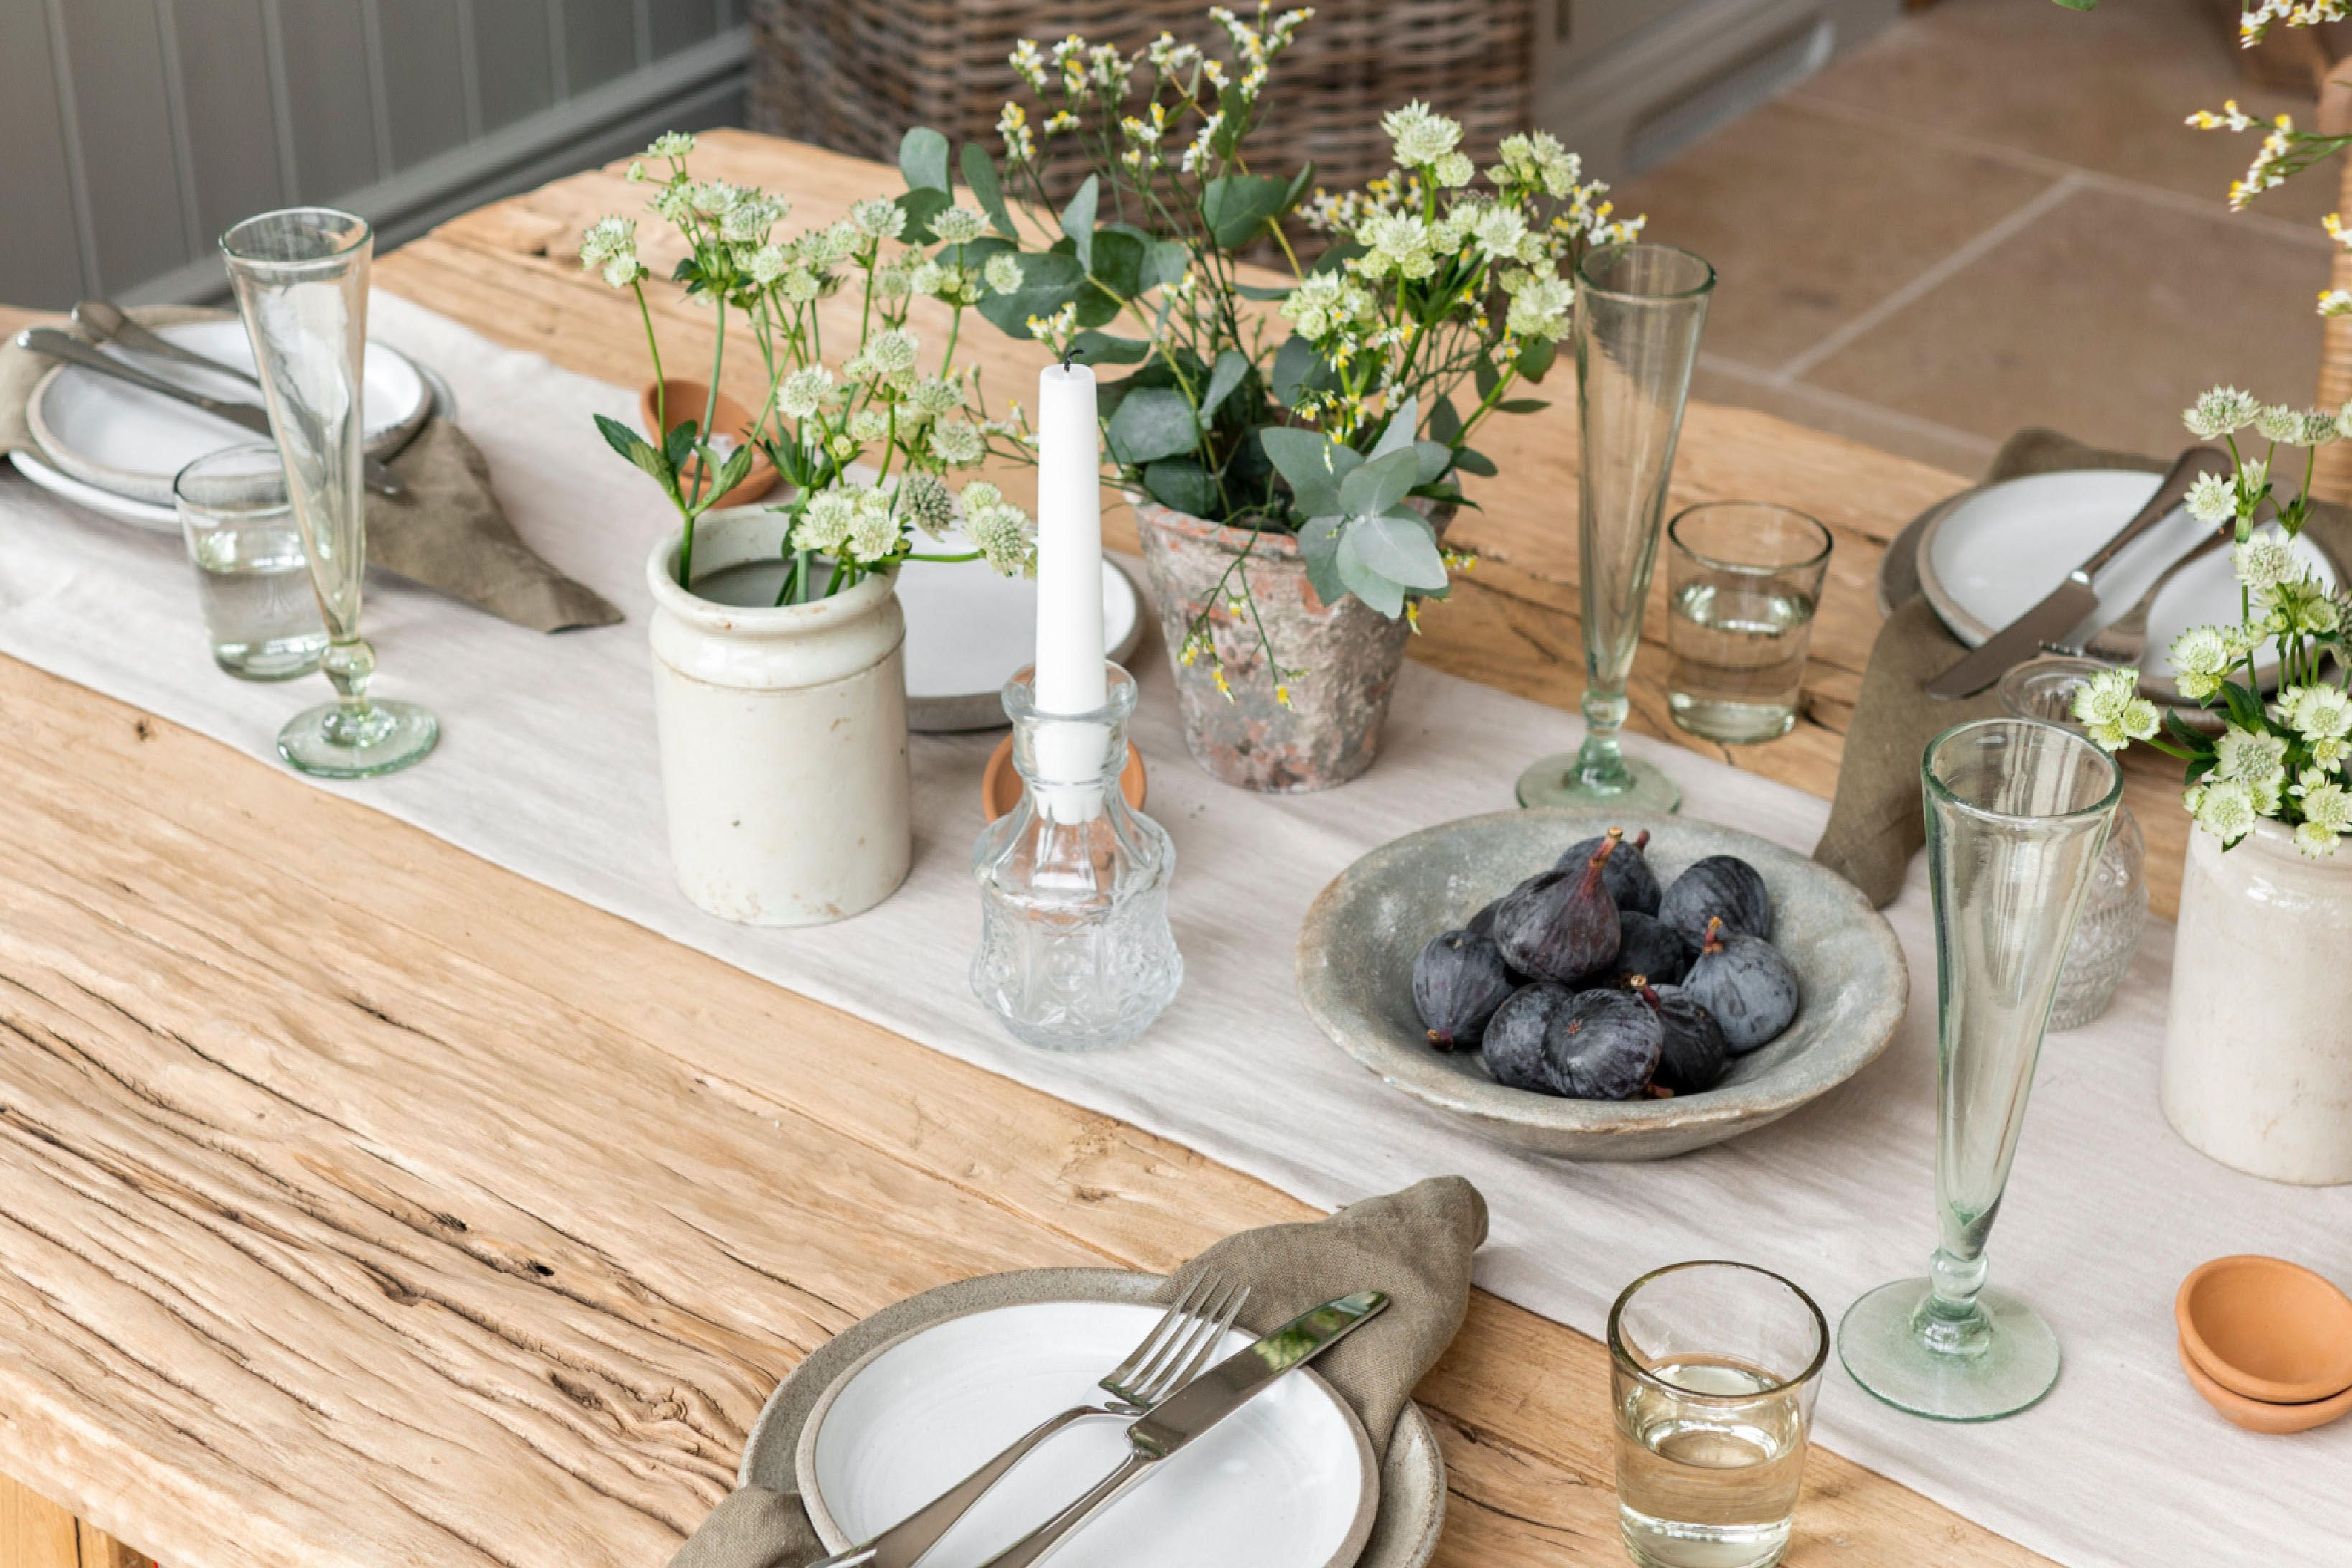 Lydia Millen: 5 interiors lessons I learnt over lockdown